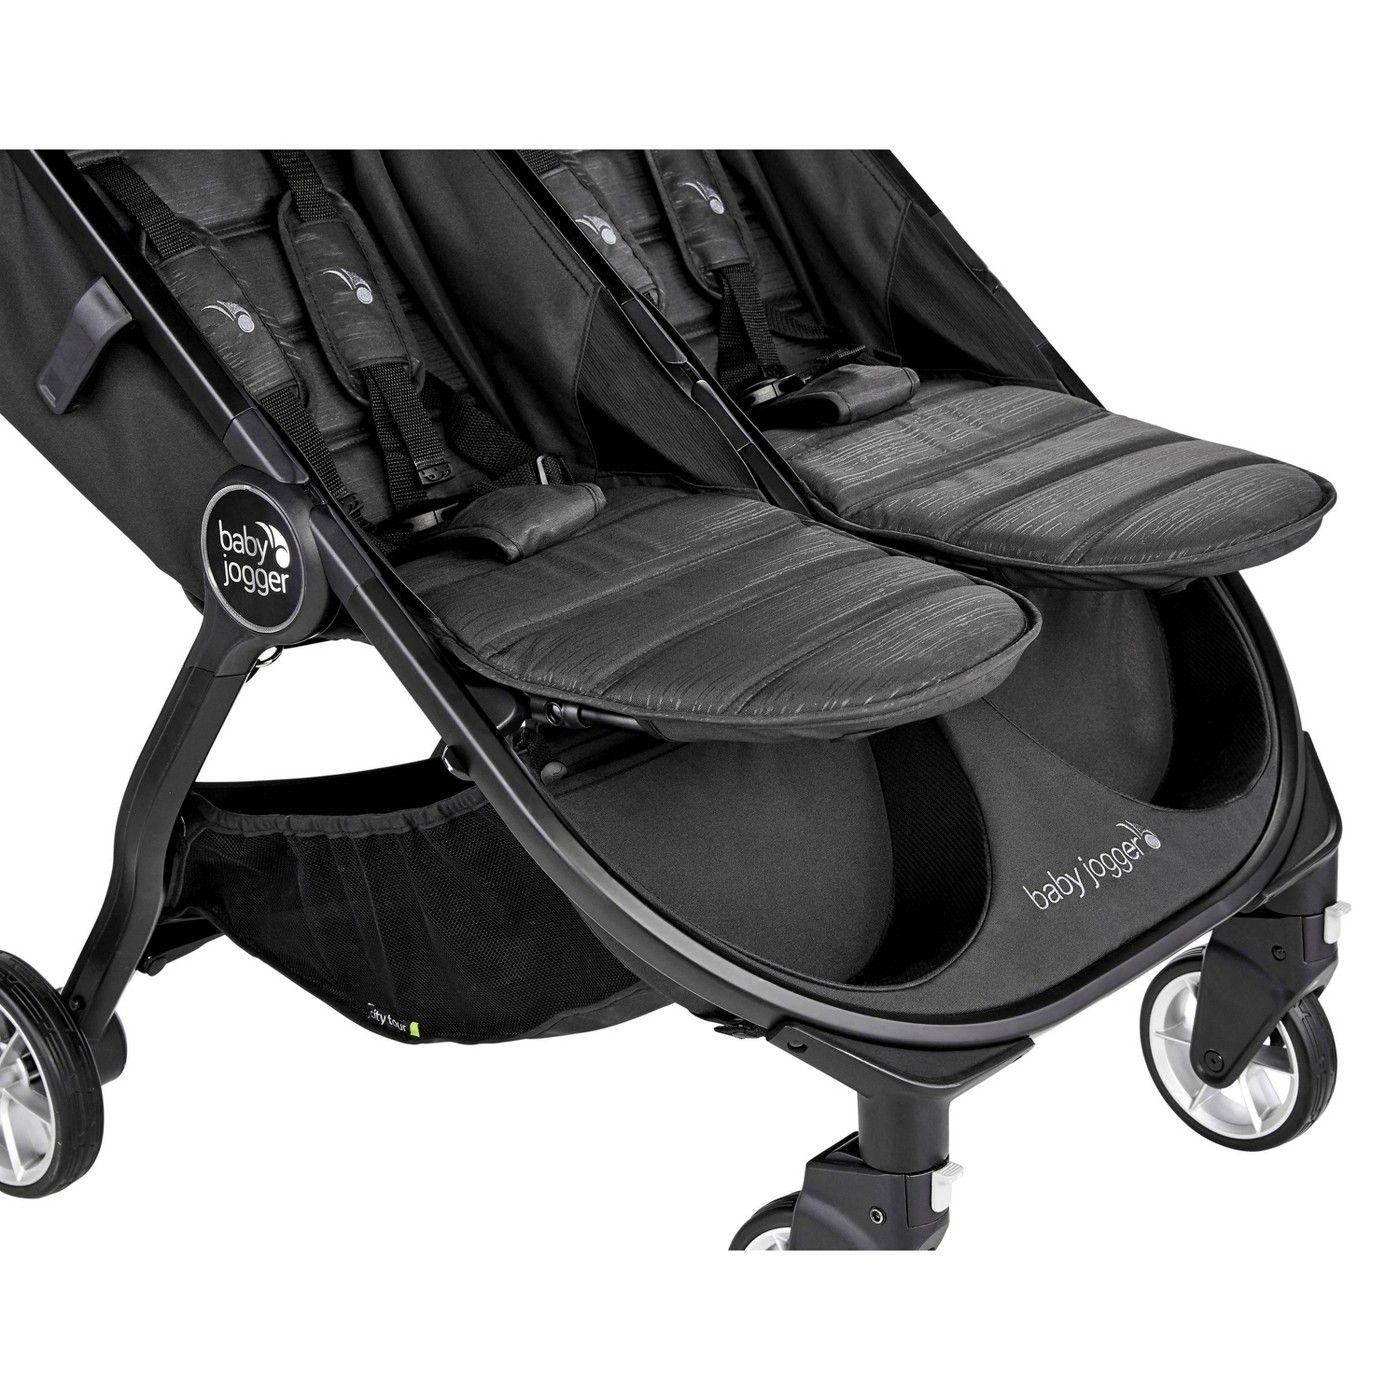 15+ Baby jogger city tour 2 double stroller review ideas in 2021